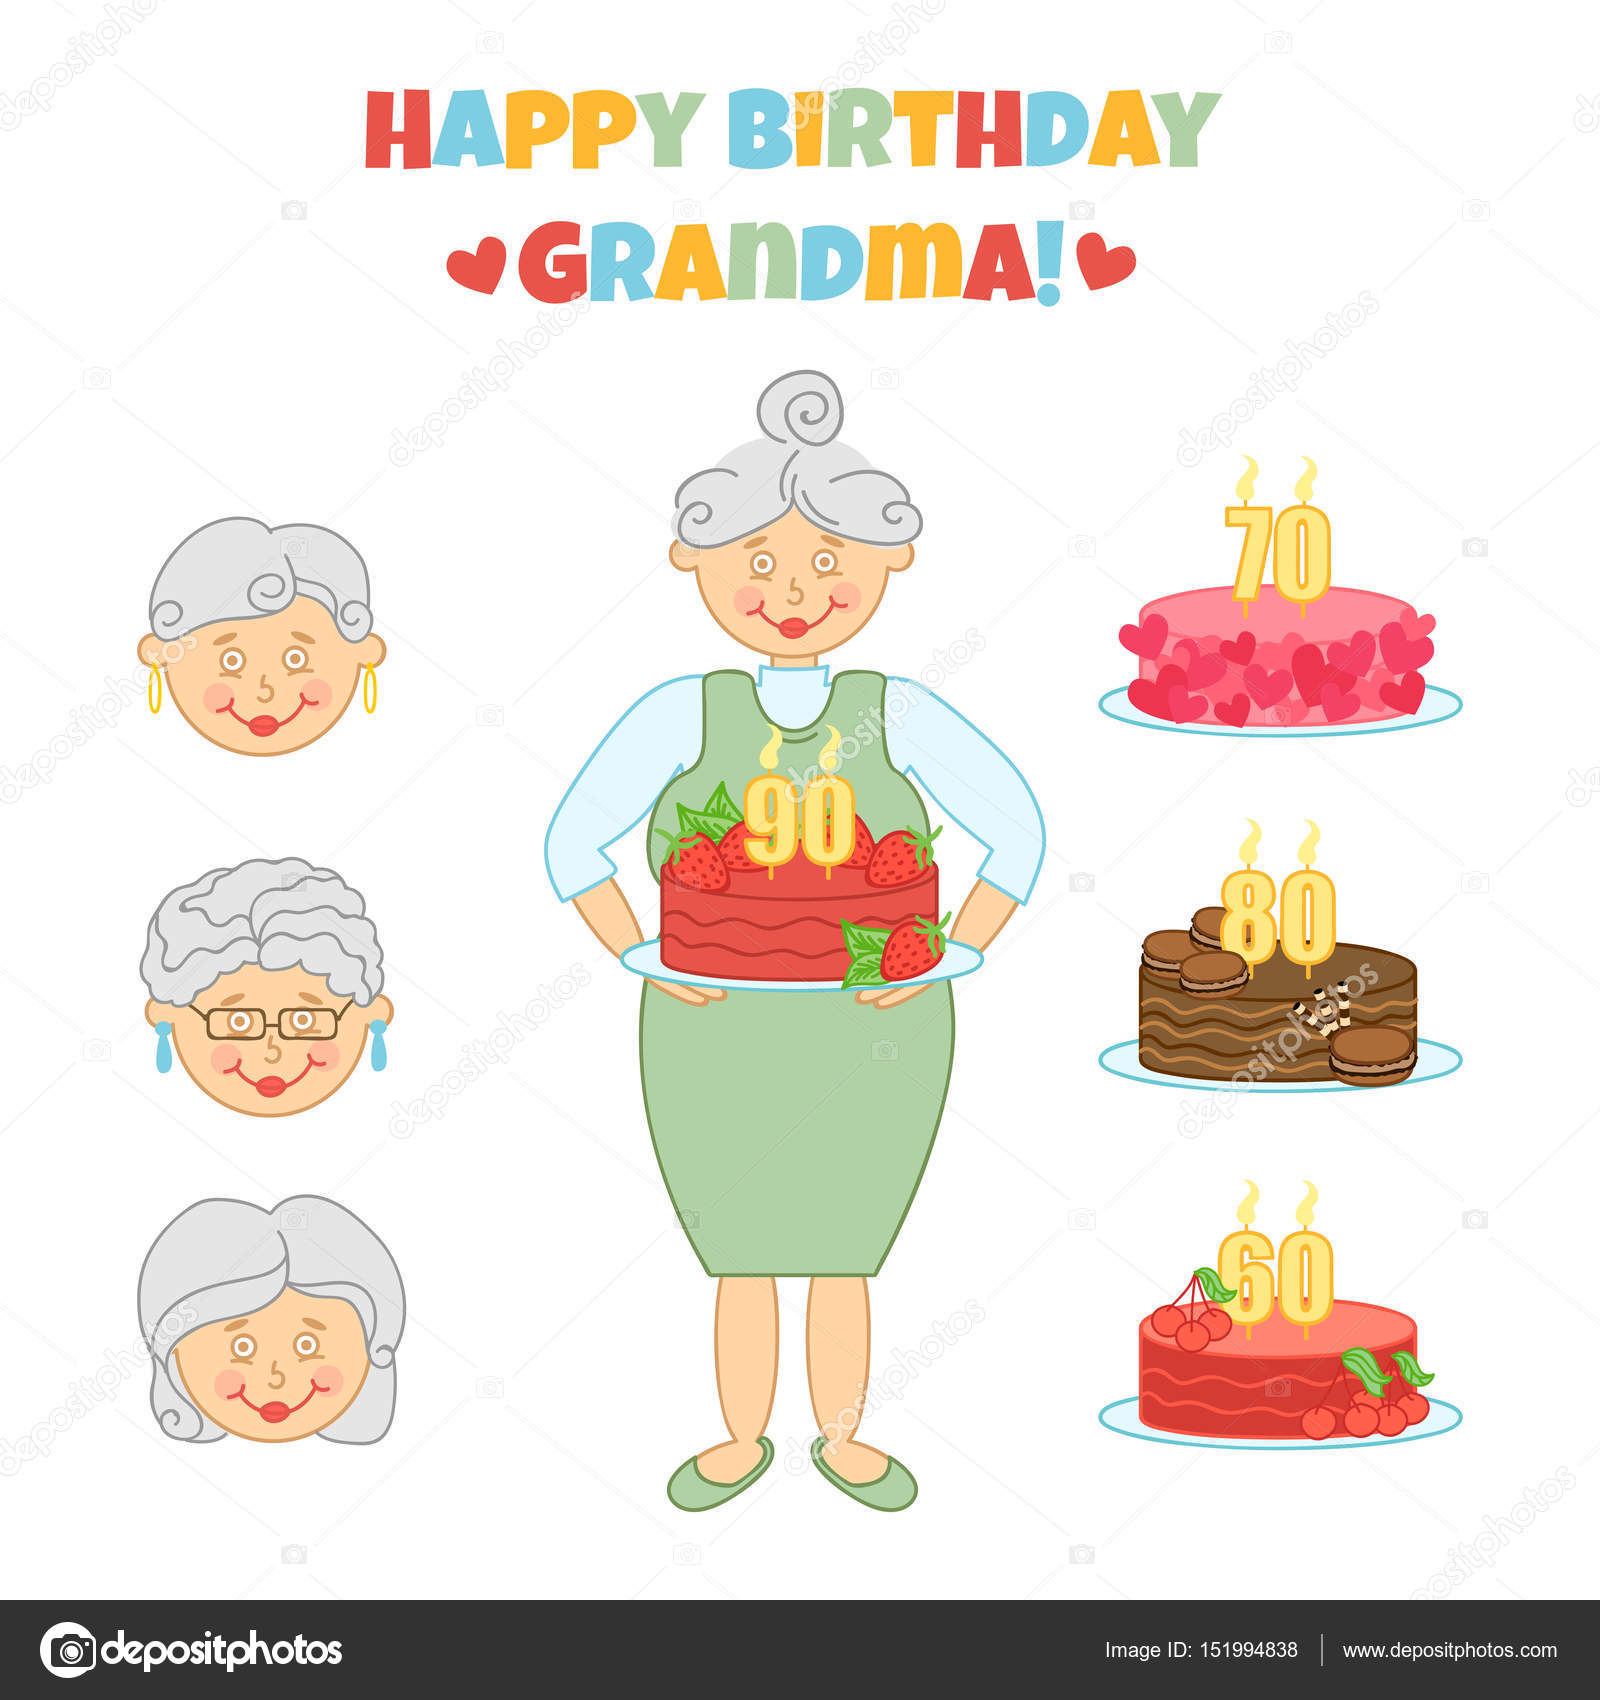 Happy Birthday Grandma Cute Vector Illustration With Grandmother And Cake Congratulation Greeting Card In Different Variations Invitation